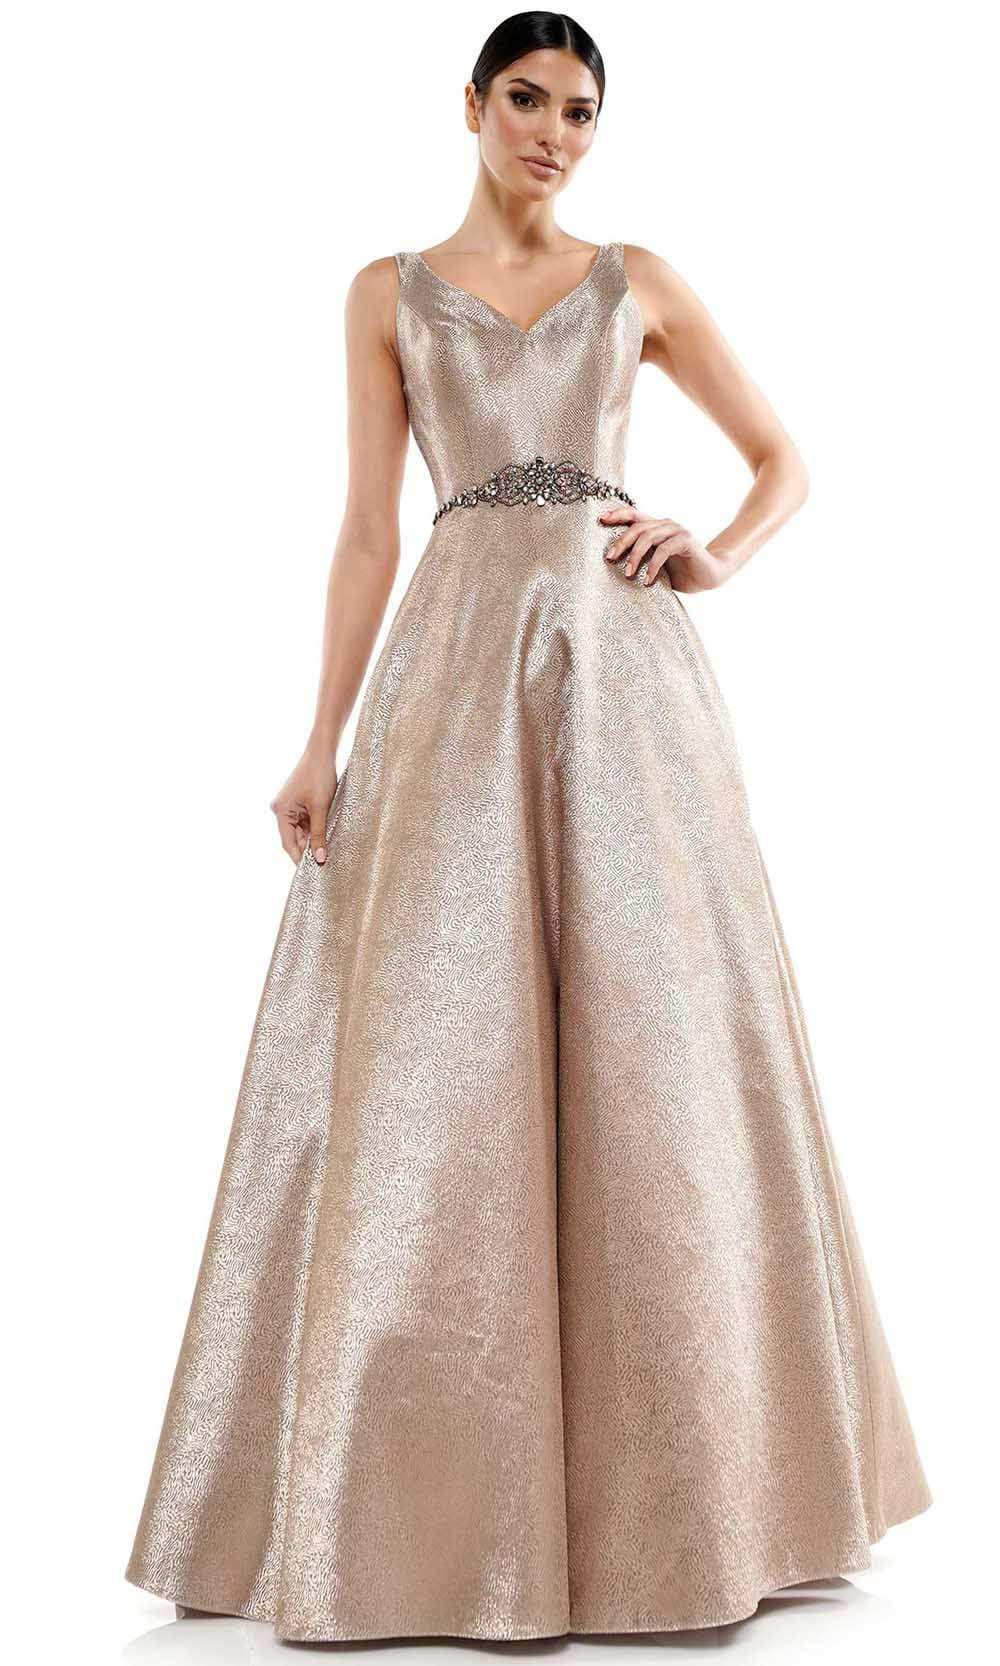 Marsoni by Colors - MV1033 Sleeveless V-Neck Beaded Waist Brocade Gown Mother of the Bride Dresses 4 / Light Gold